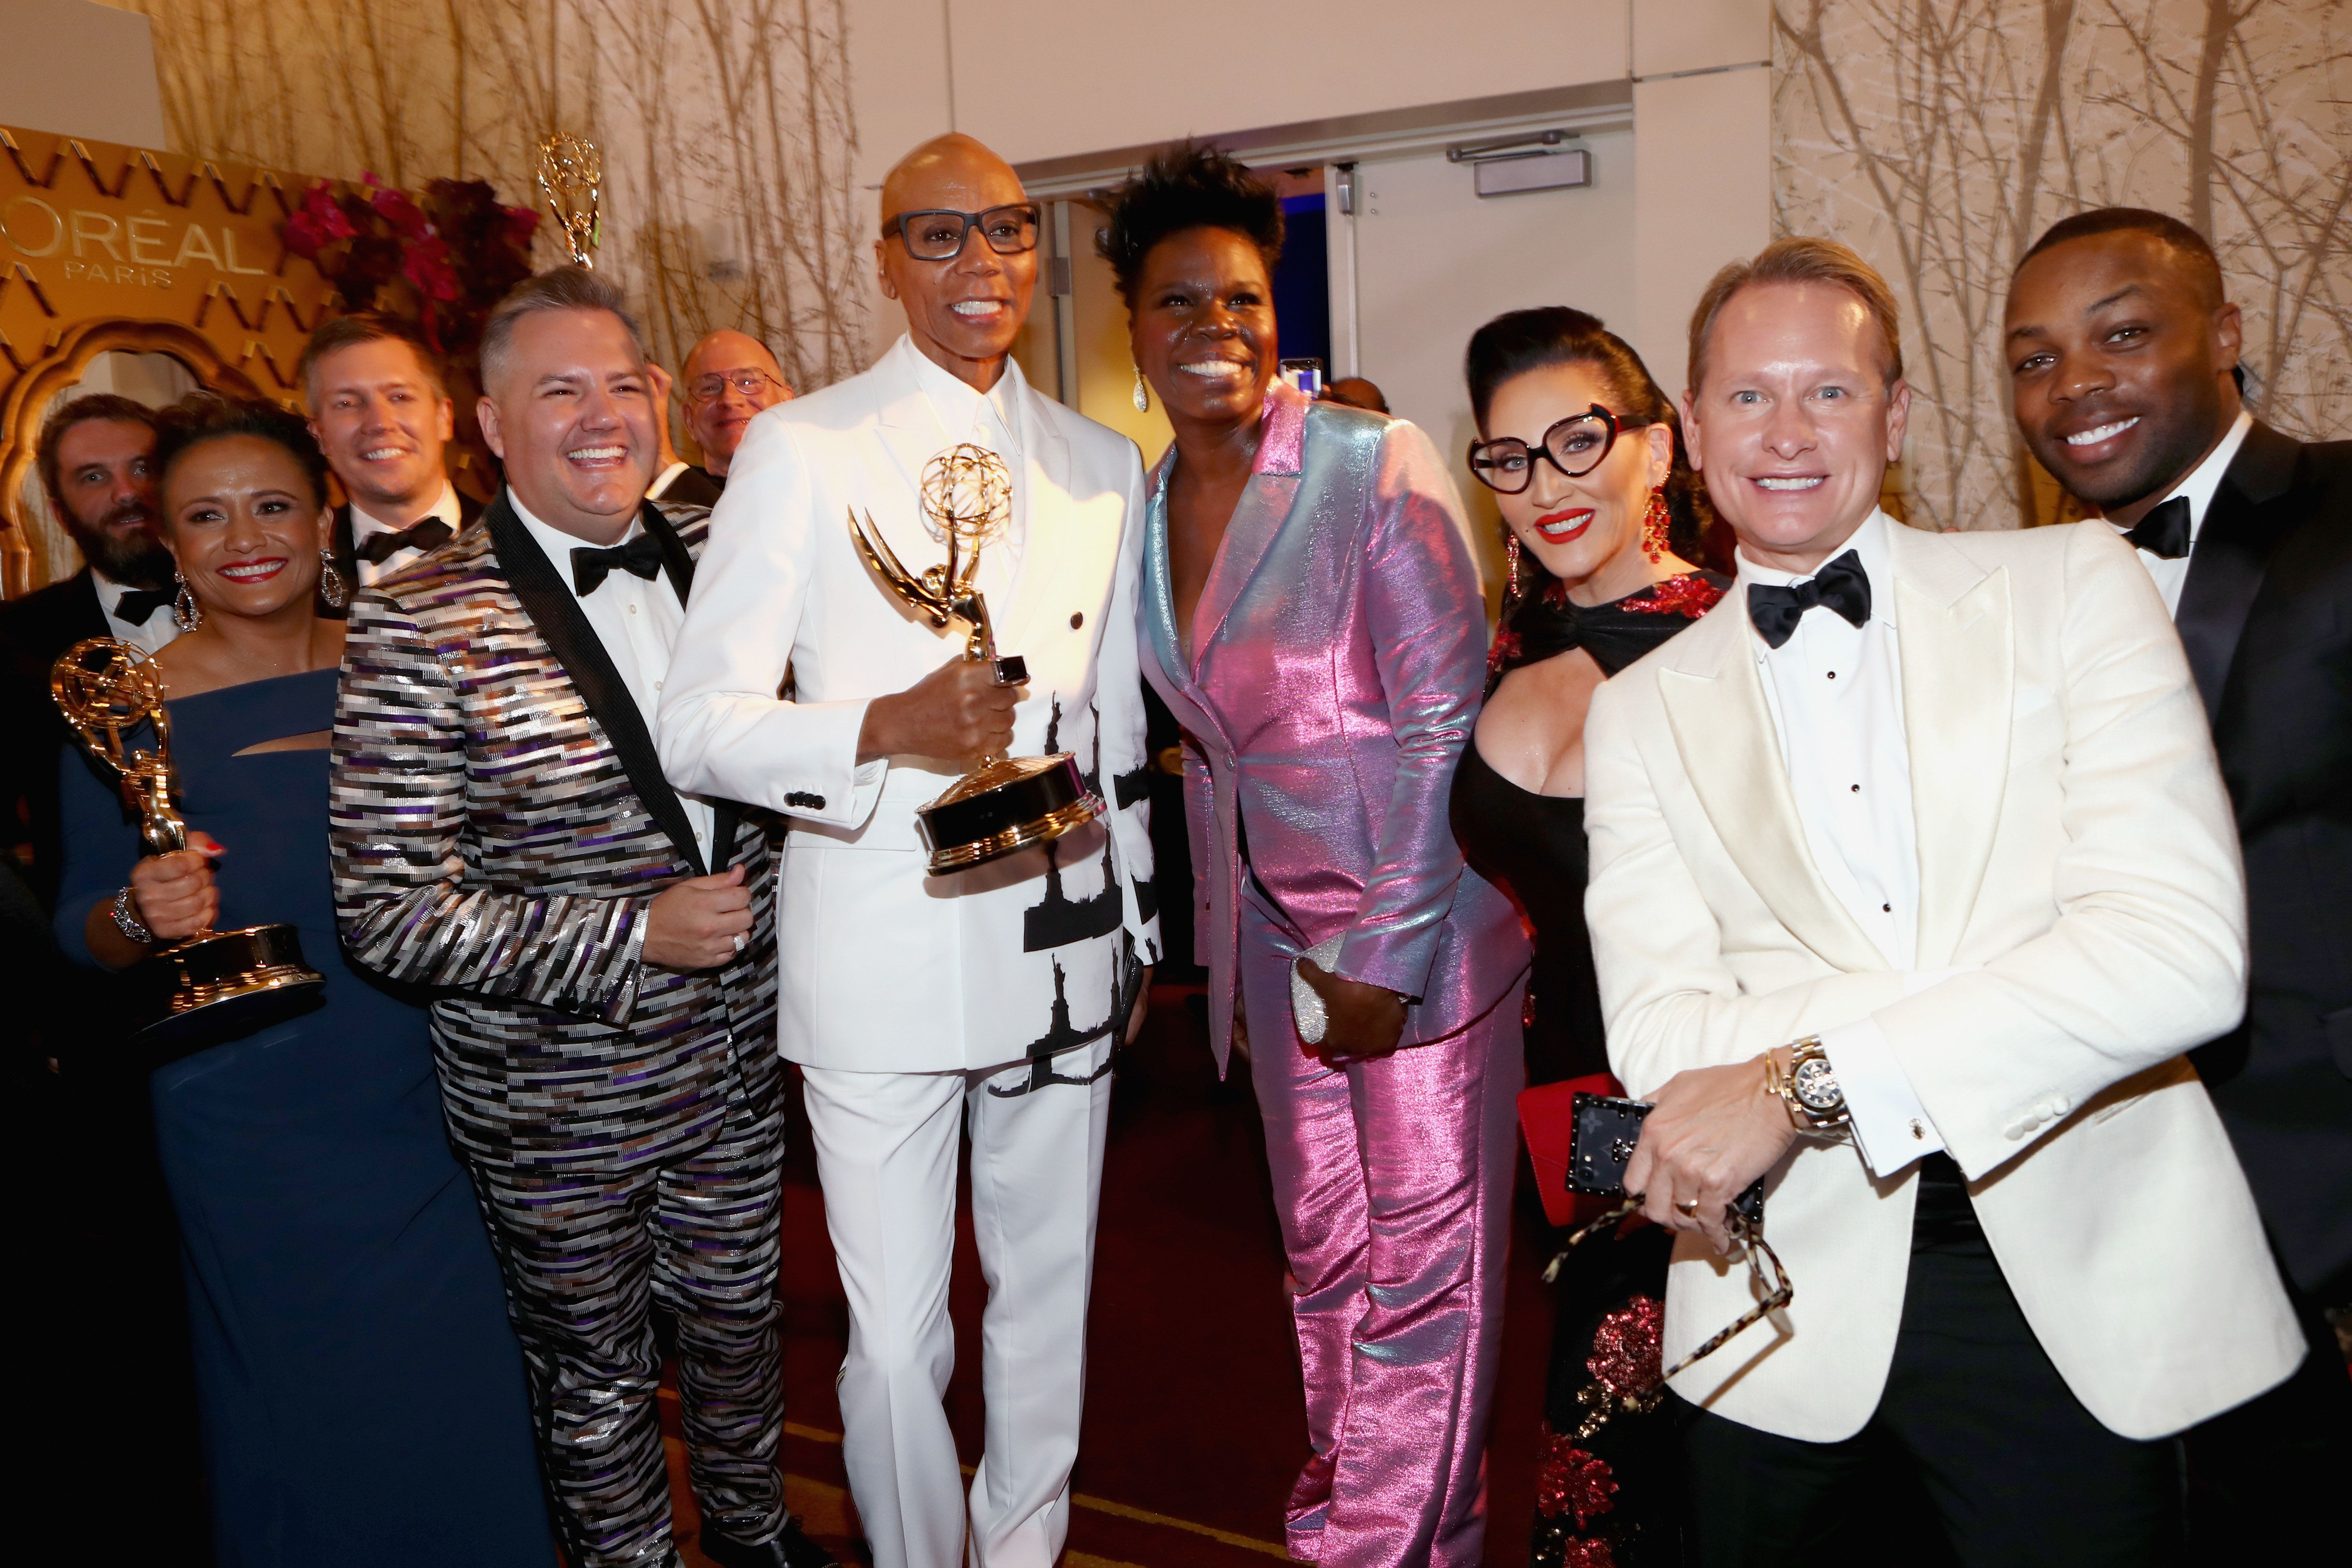 LOS ANGELES, CA - SEPTEMBER 17:  Cast and crew of Outstanding Reality-Competition Program winners for 'RuPaul's Drag Race' attend IMDb LIVE After The Emmys 2018 on September 17, 2018 in Los Angeles, California.  (Photo by Rich Polk/Getty Images for IMDb)